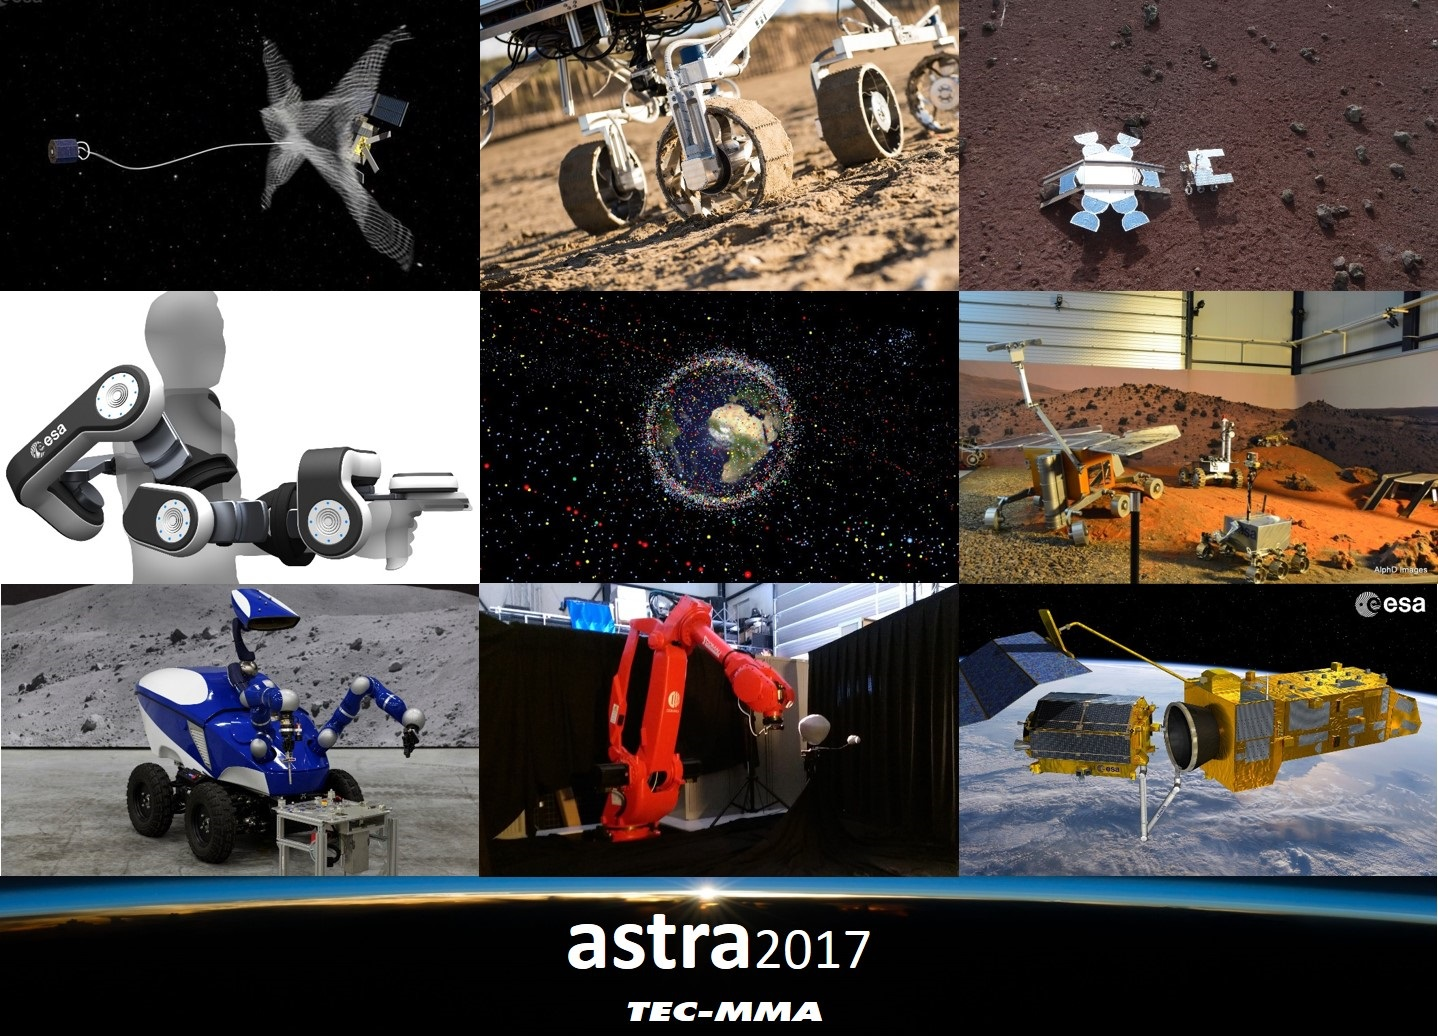 Our software engineer Stefan Kimmer is presenting his research at ASTRA